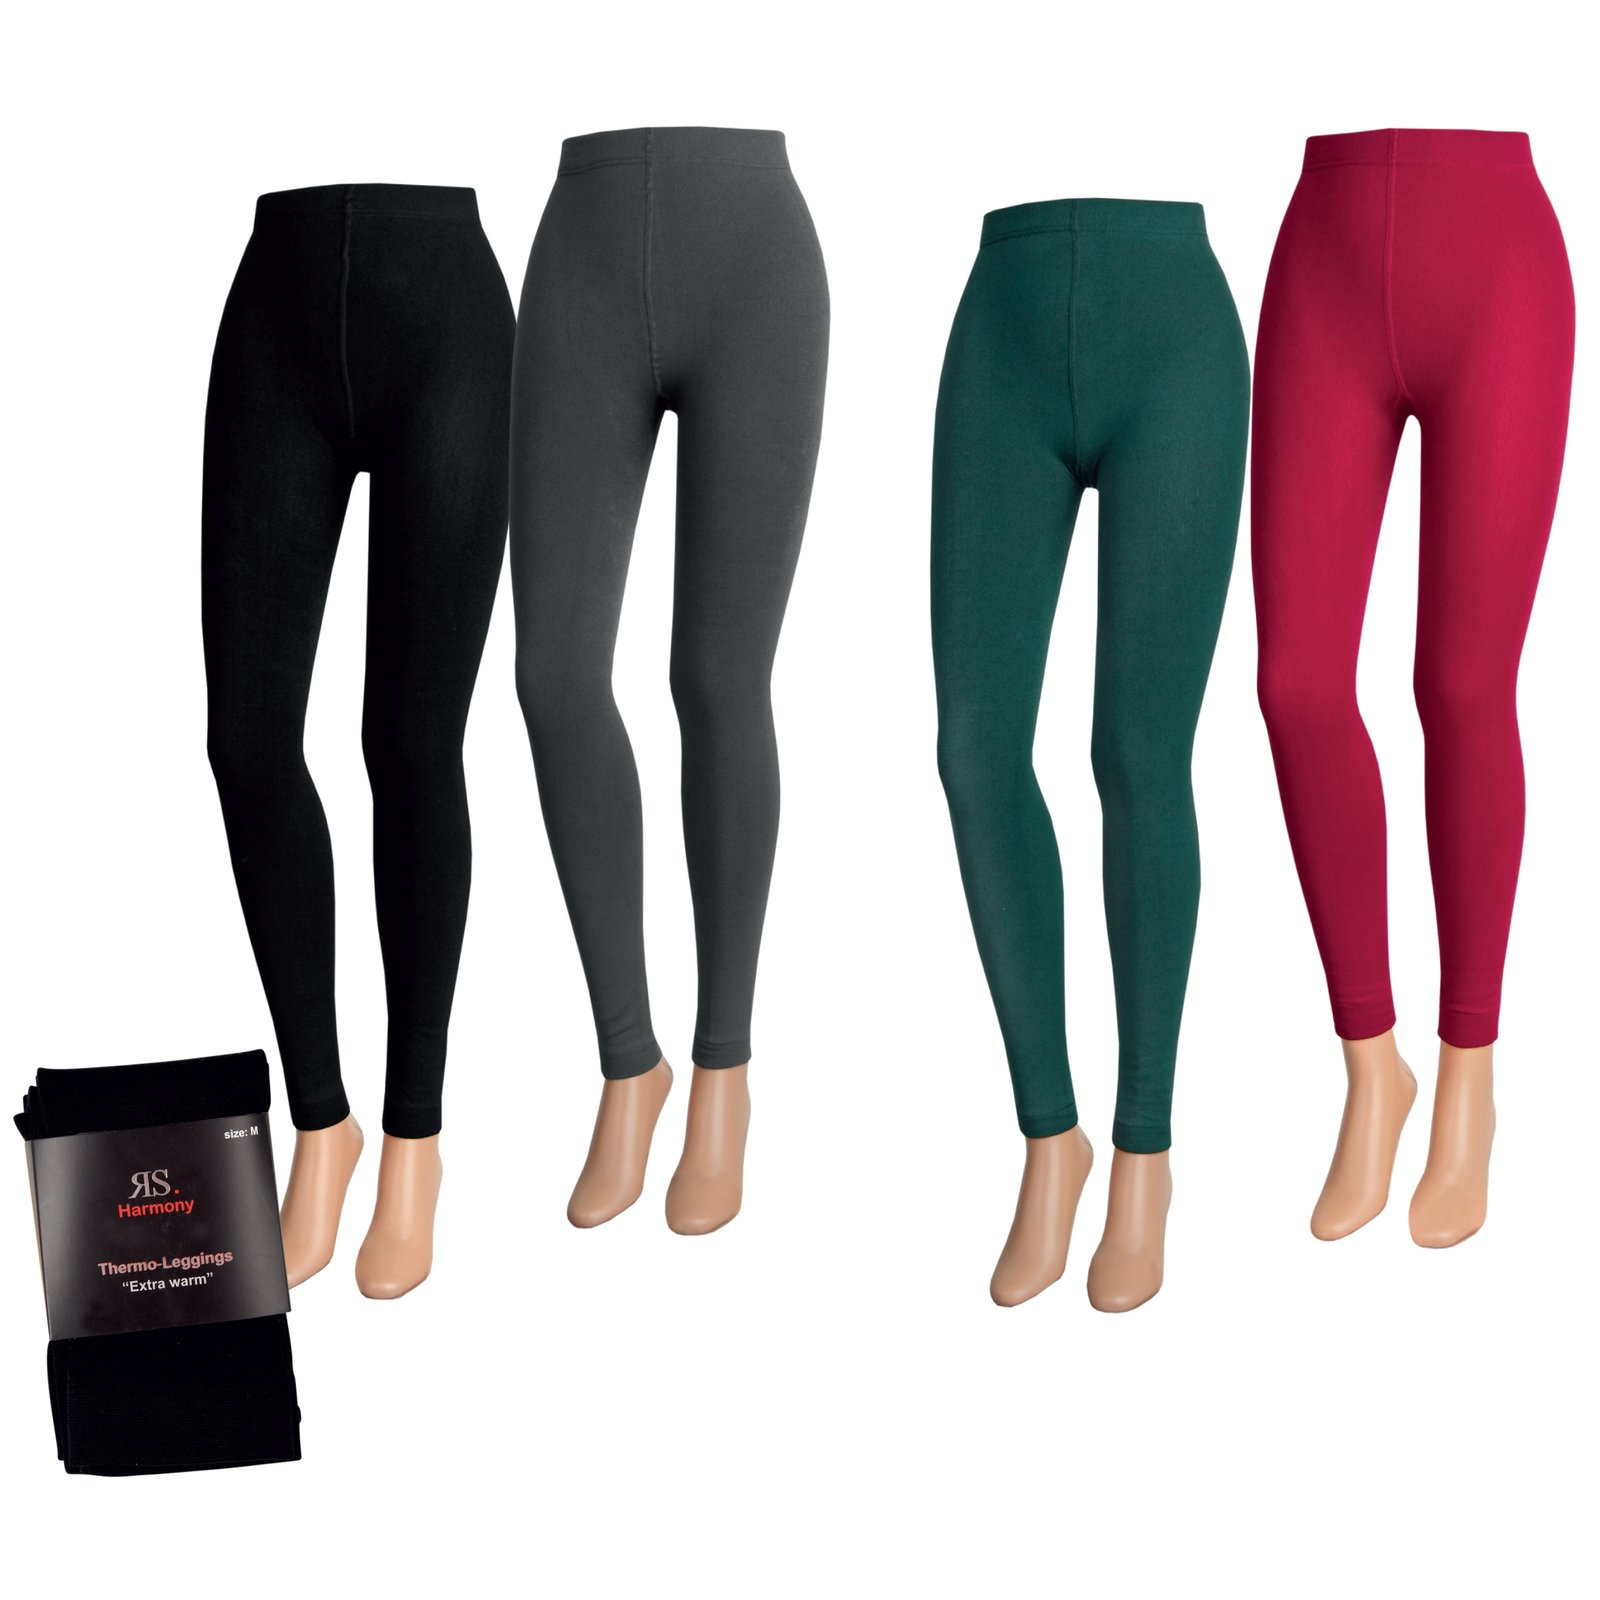 Damen Thermo Legging Extra Warm auch in XXXL